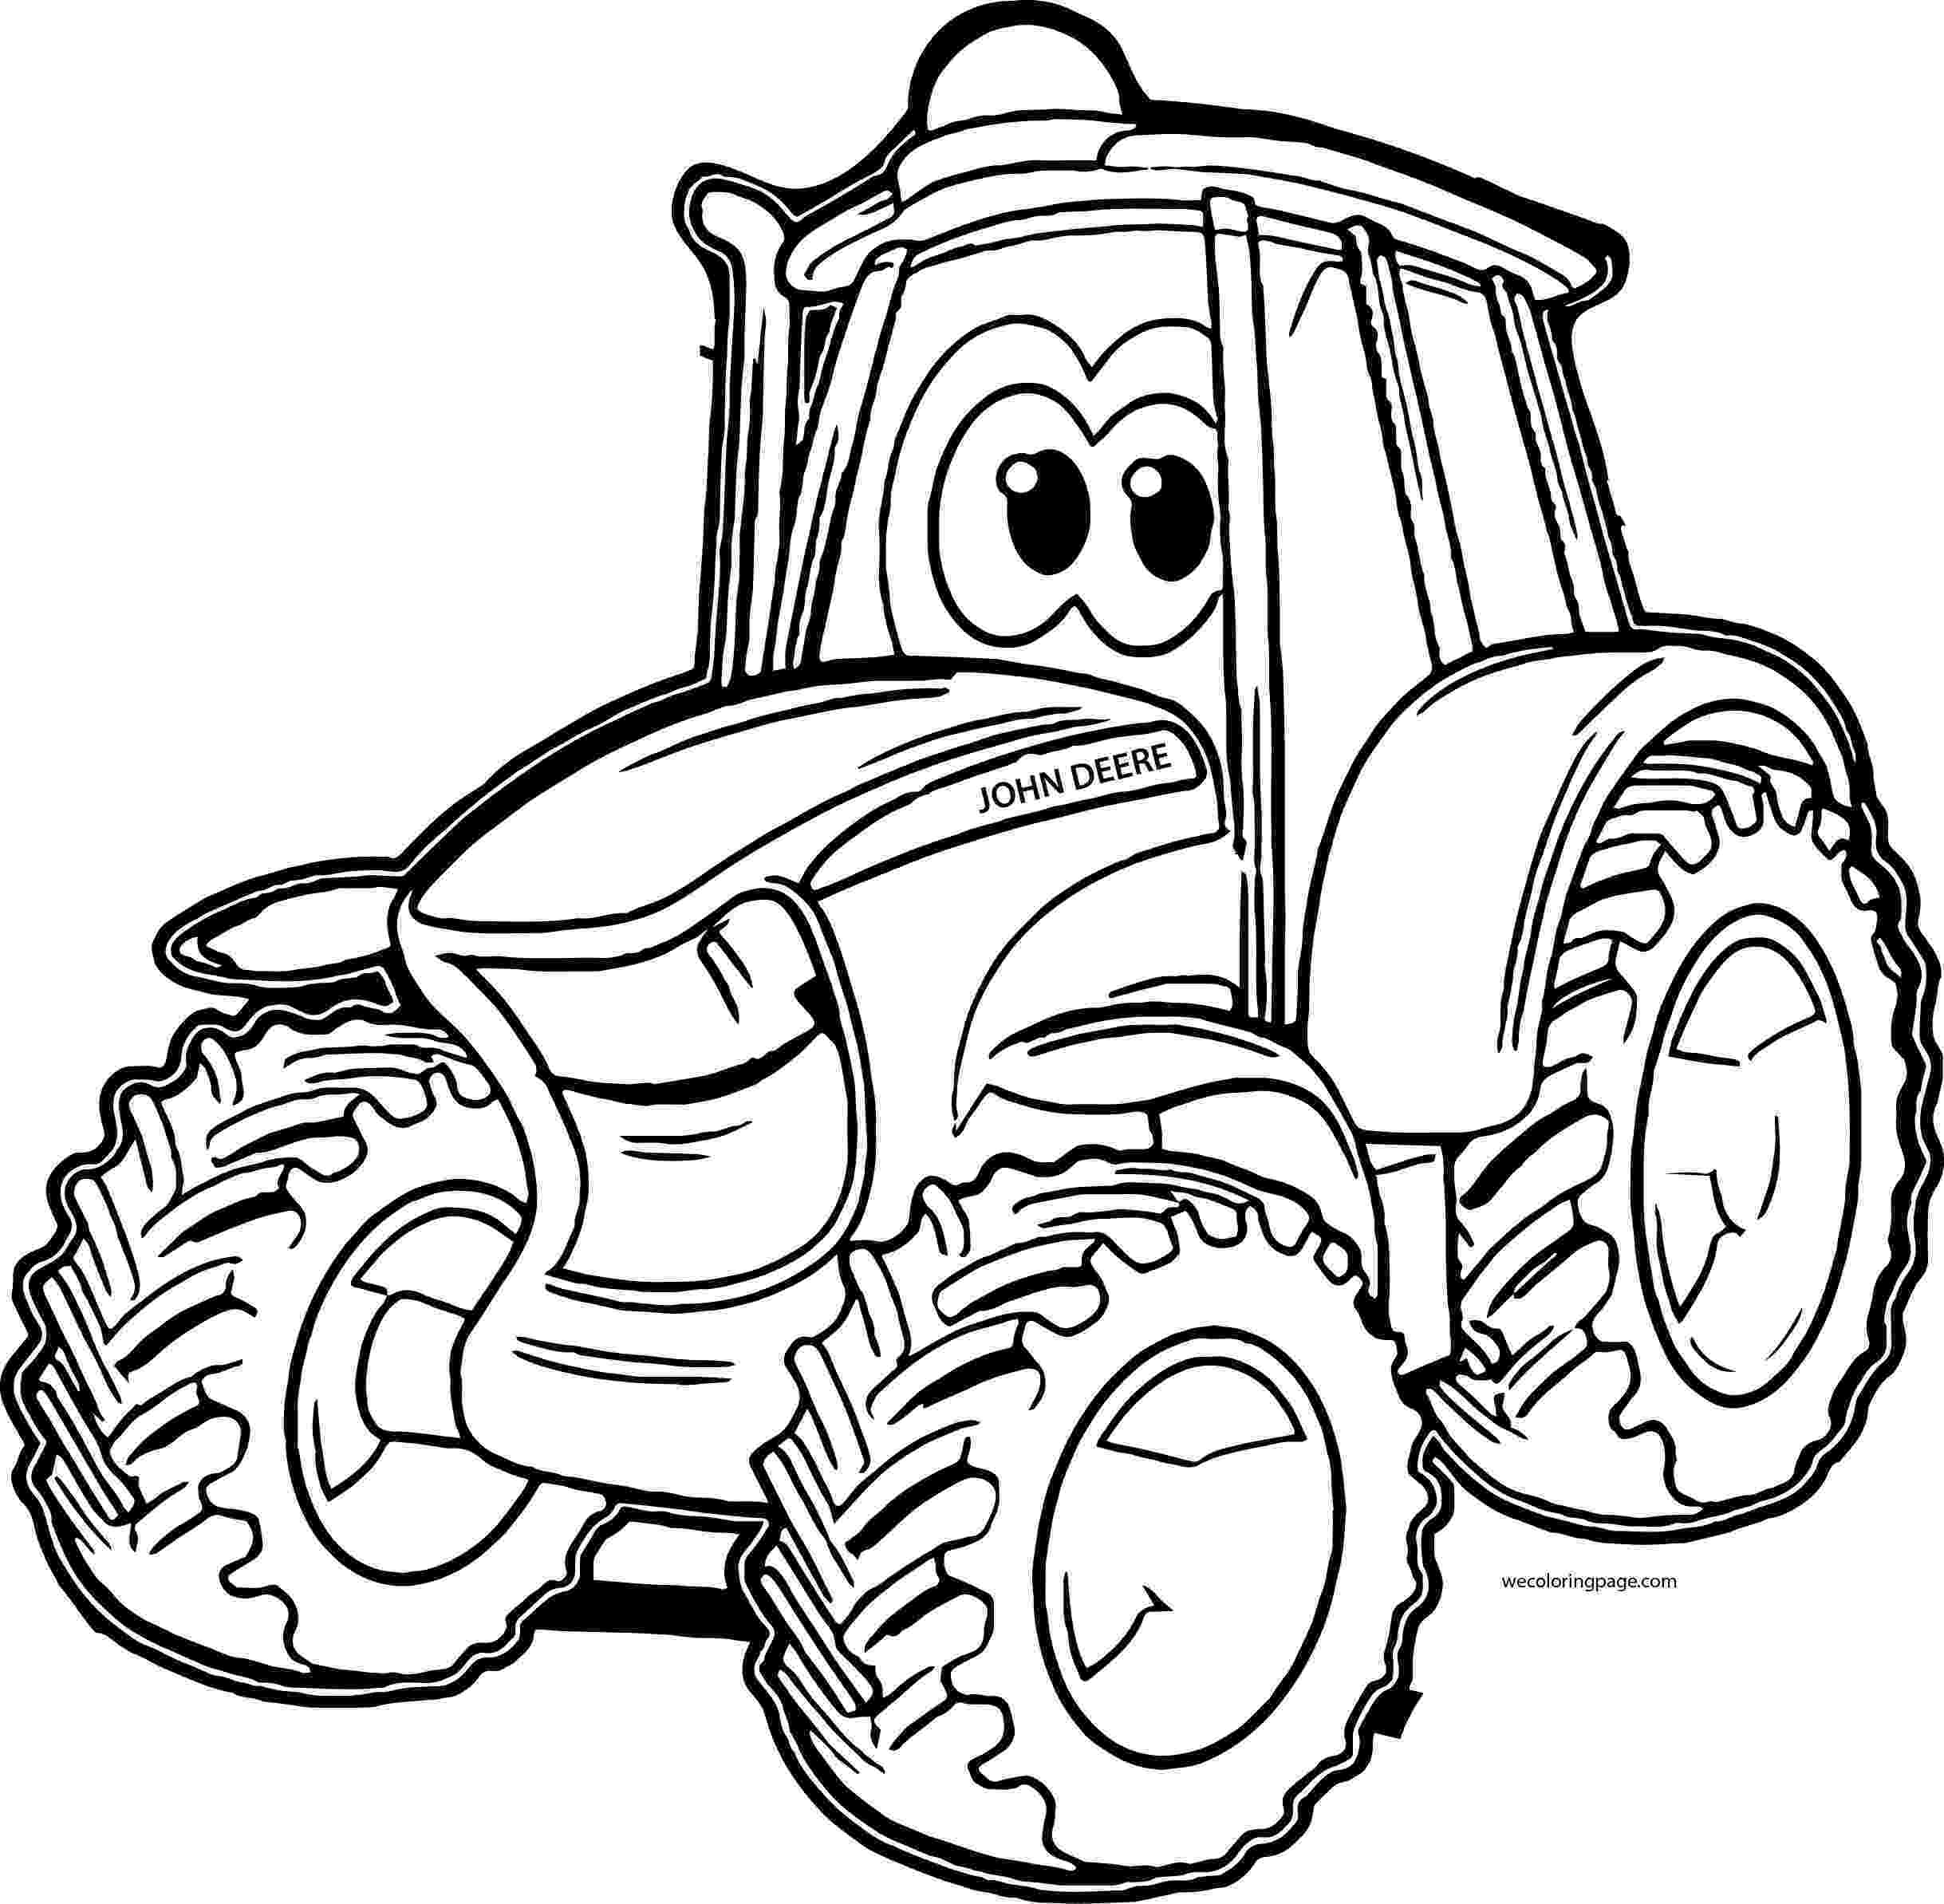 john deere tractor coloring pages john johnny deere tractor coloring pages wecoloringpagecom pages deere coloring john tractor